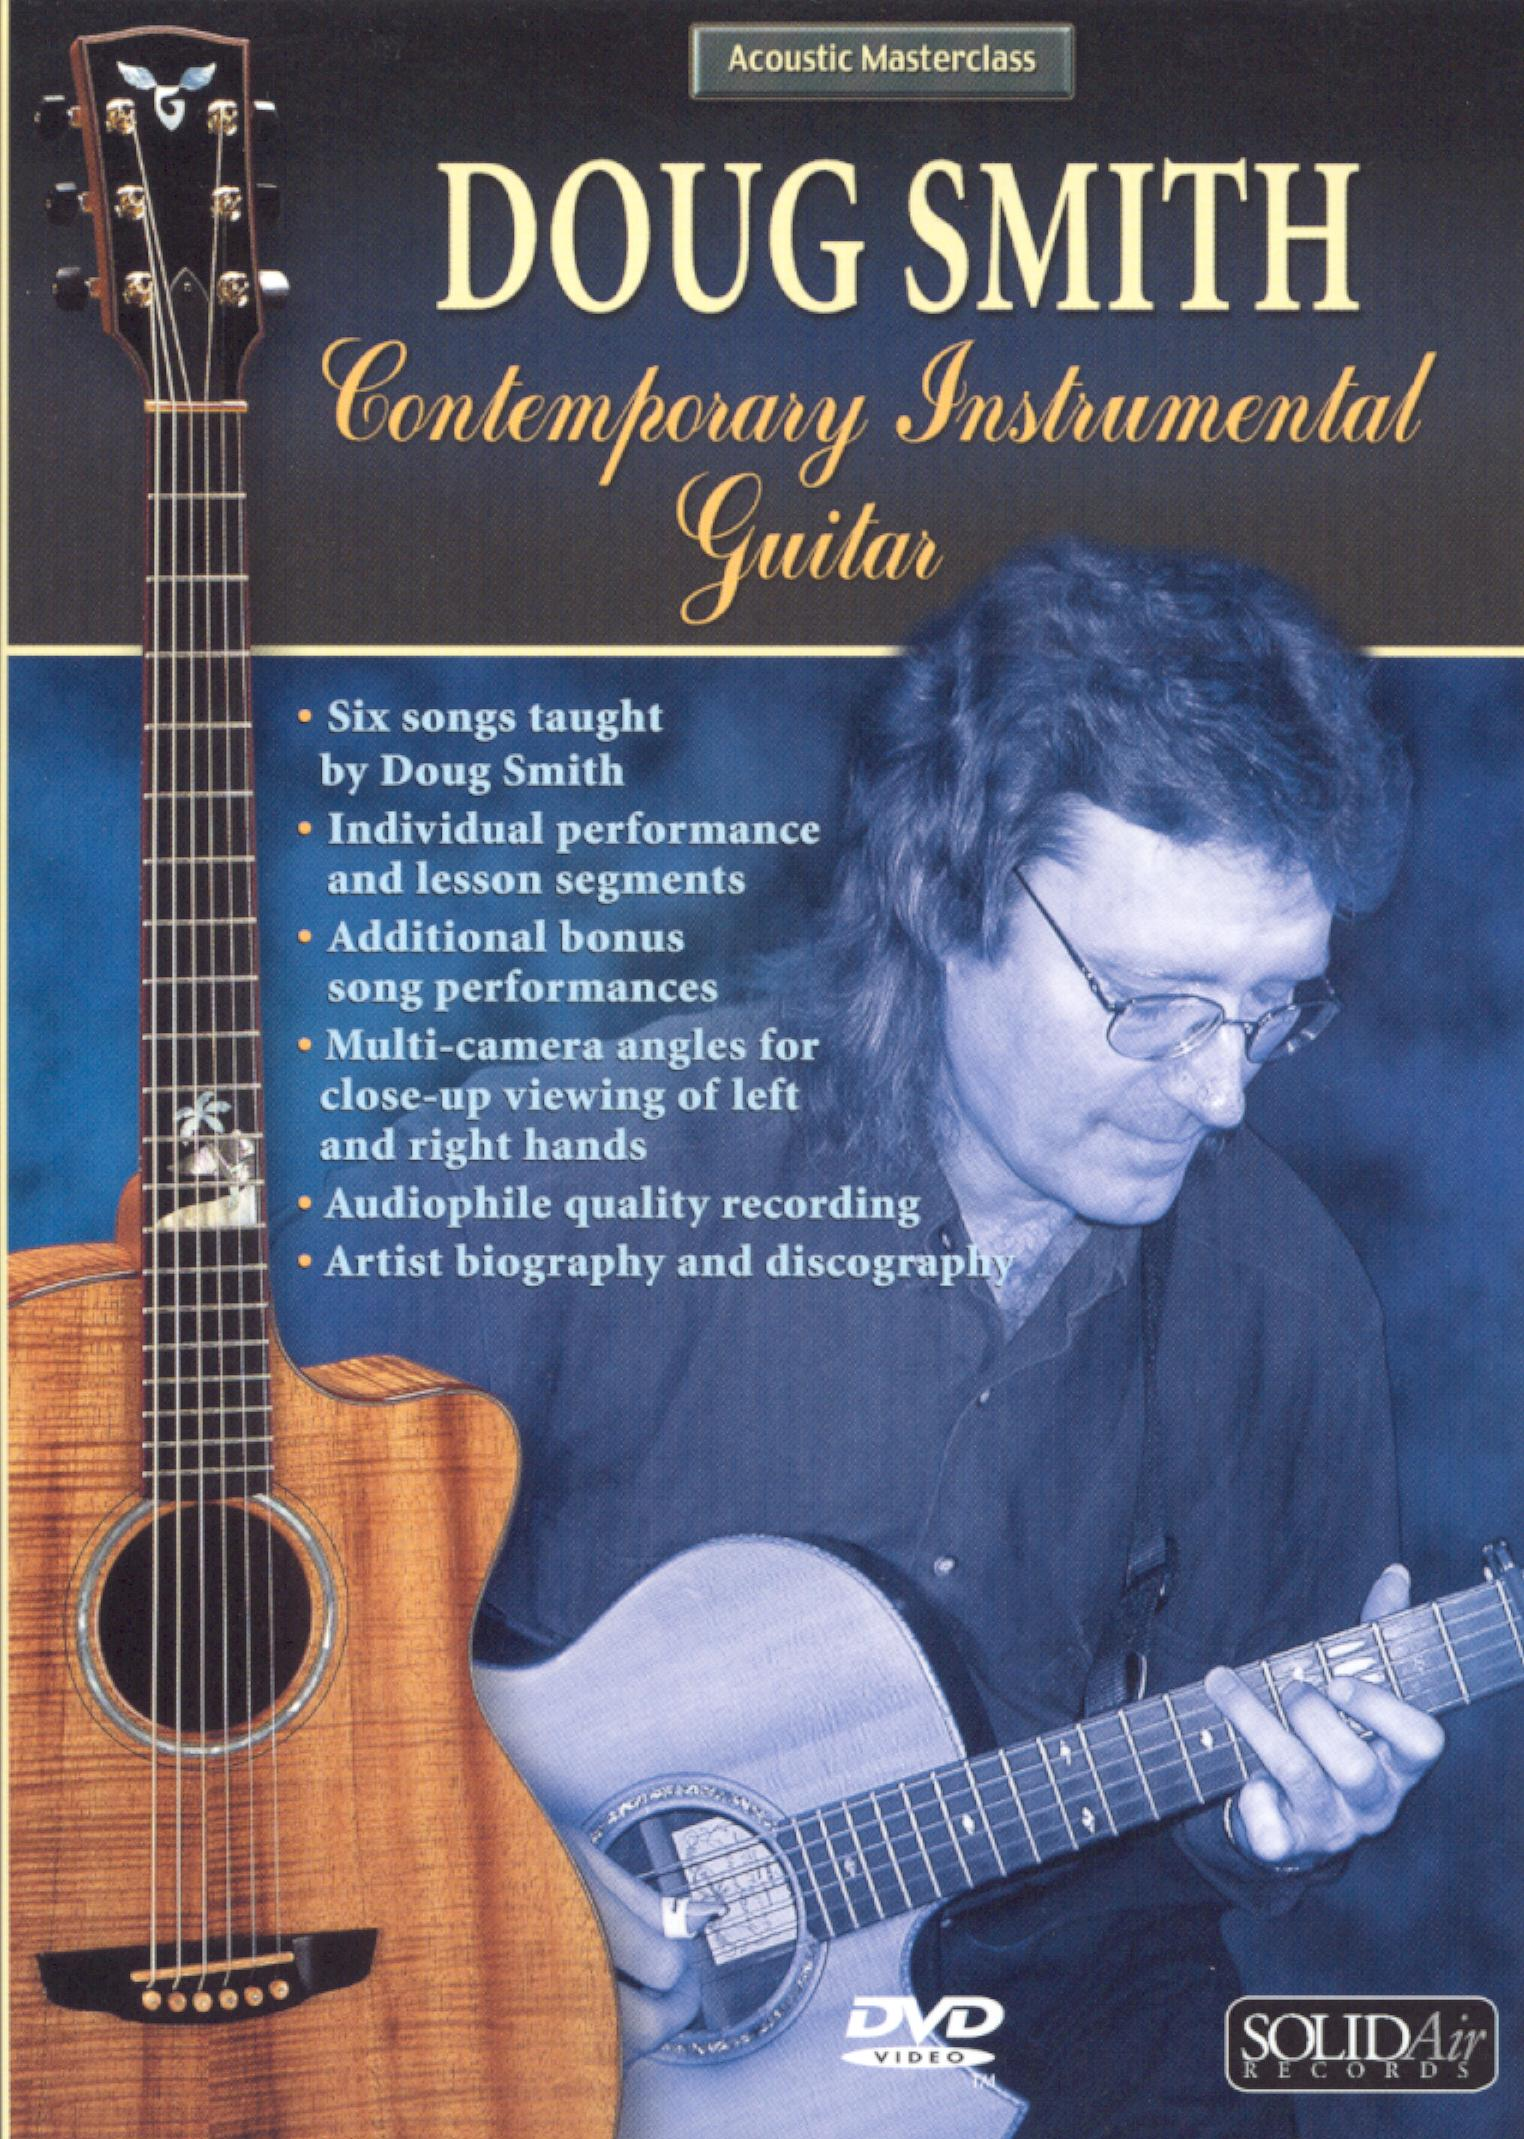 Acoustic Masterclass Series: Contemporary Instrumental Guitar